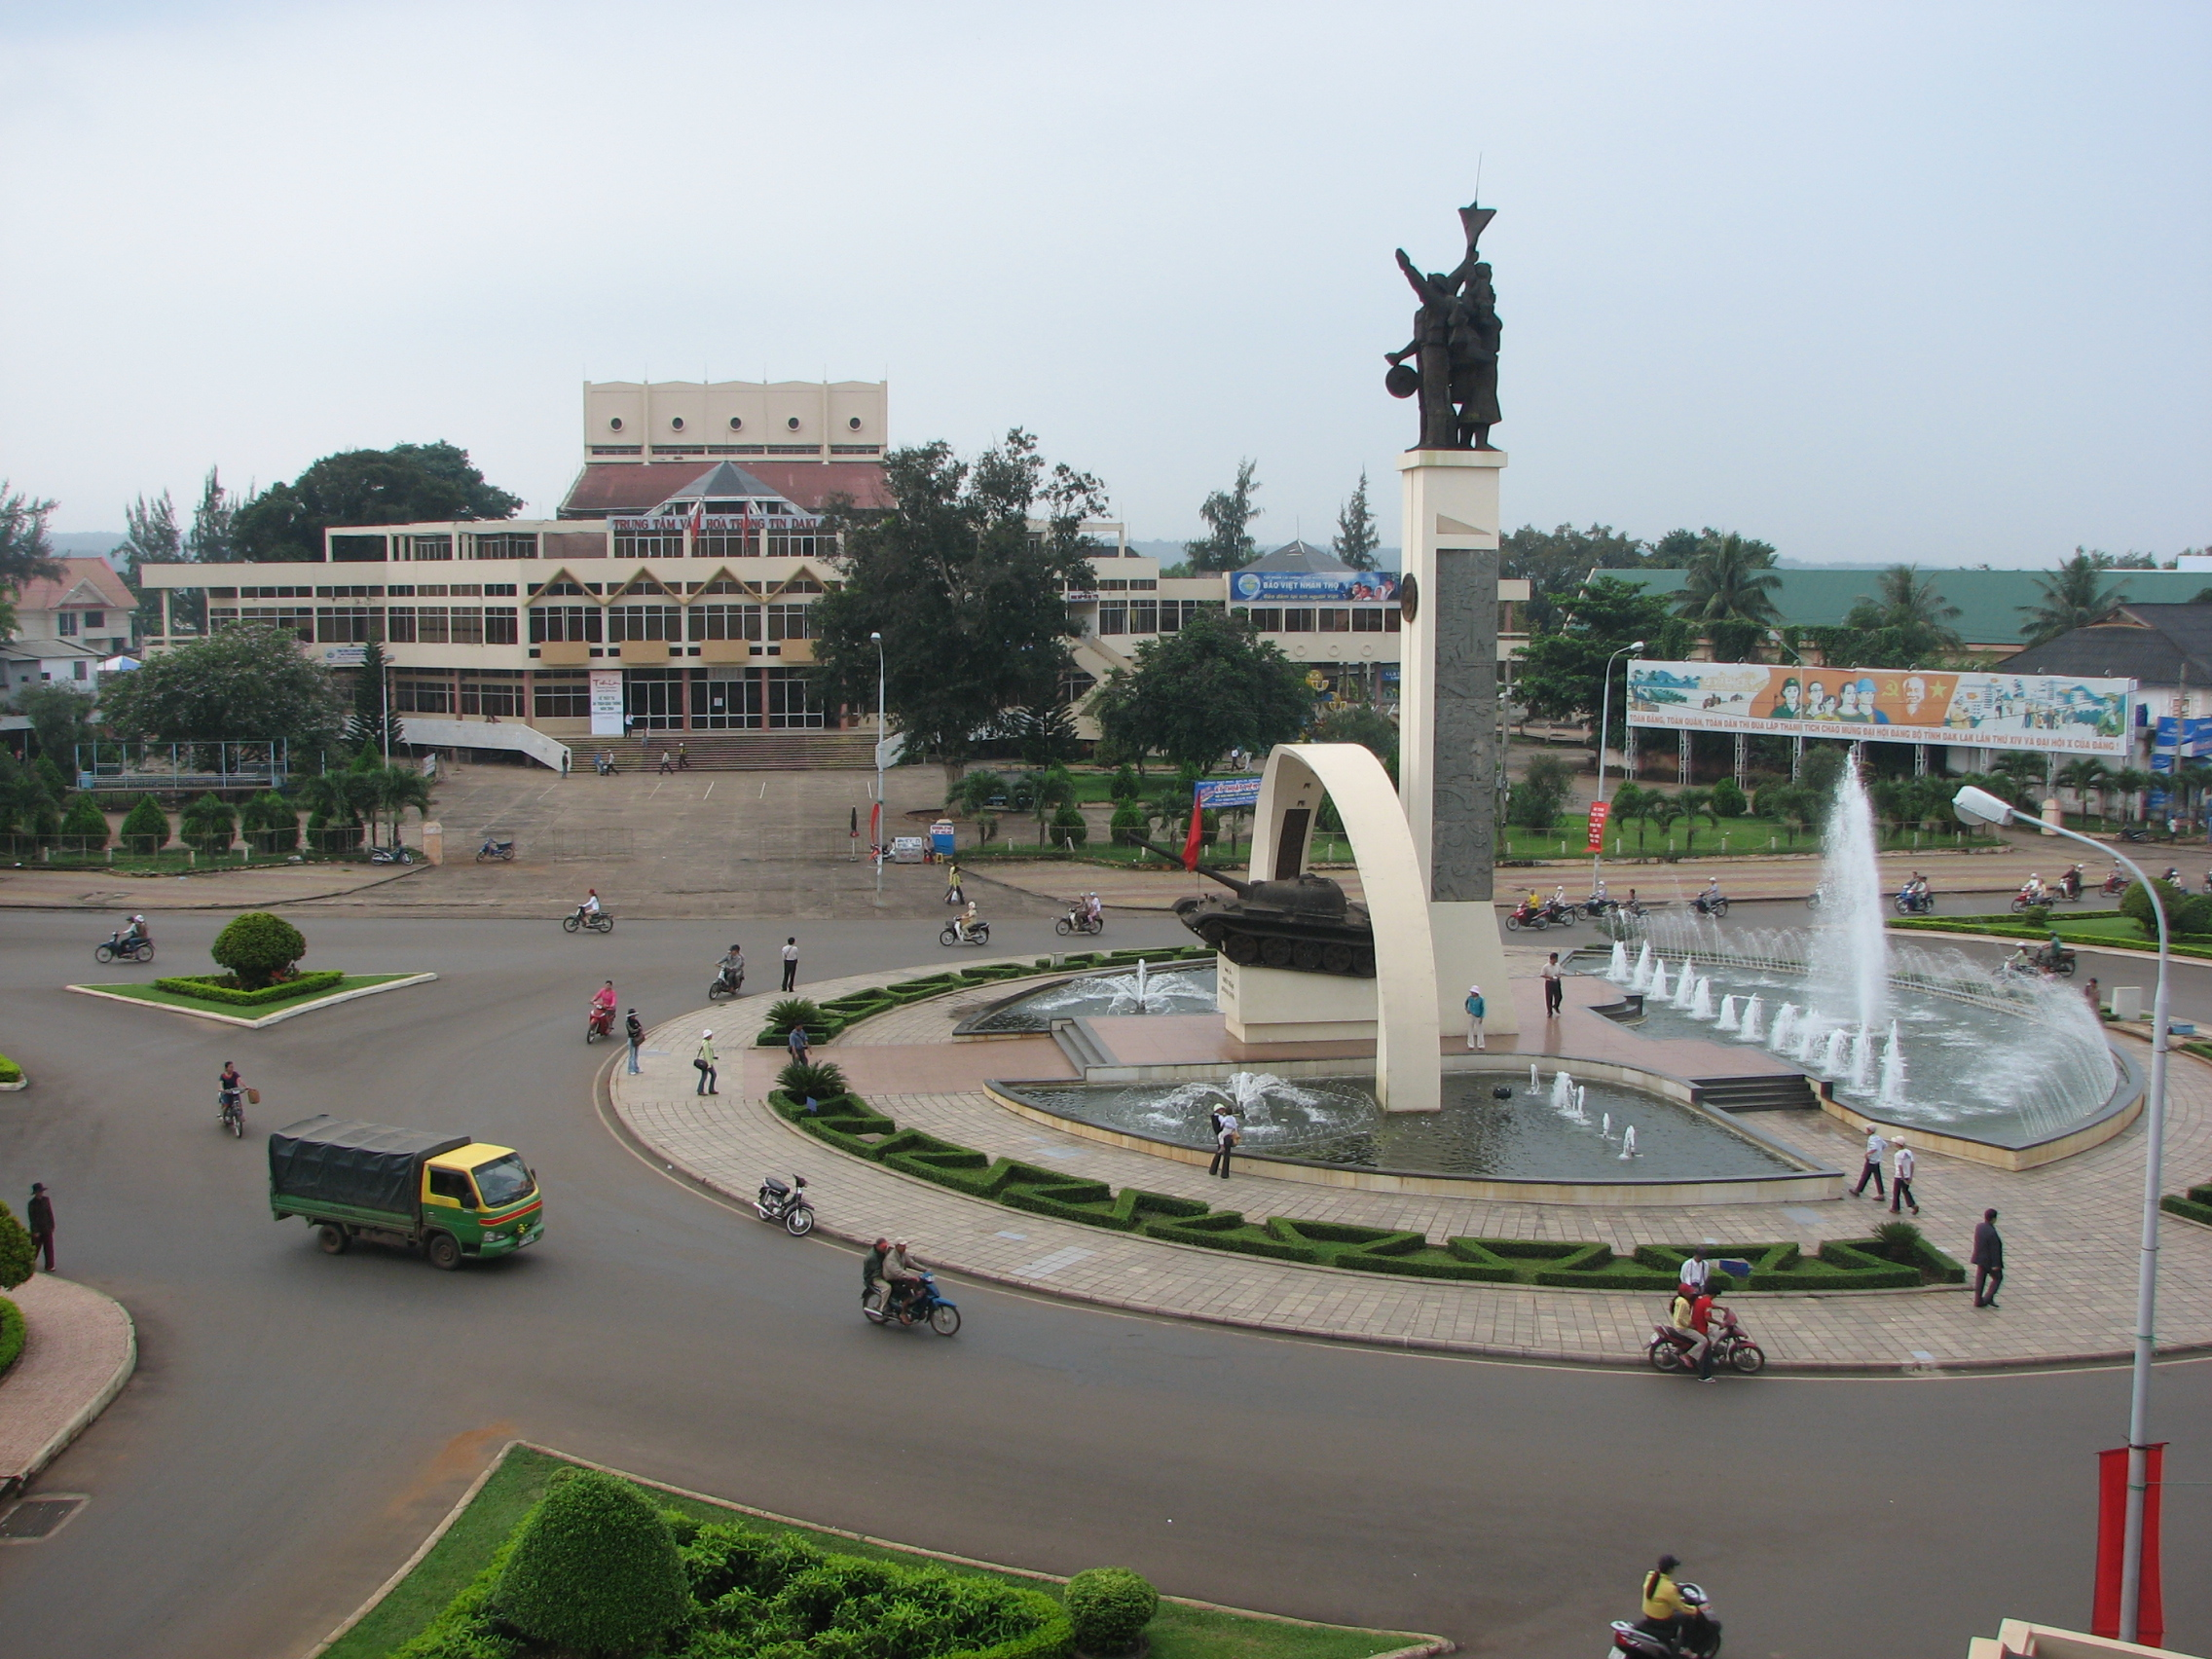 Buon Ma Thuot Vietnam  city photos gallery : Original file ‎ 2,272 × 1,704 pixels, file size: 1.62 MB, MIME ...